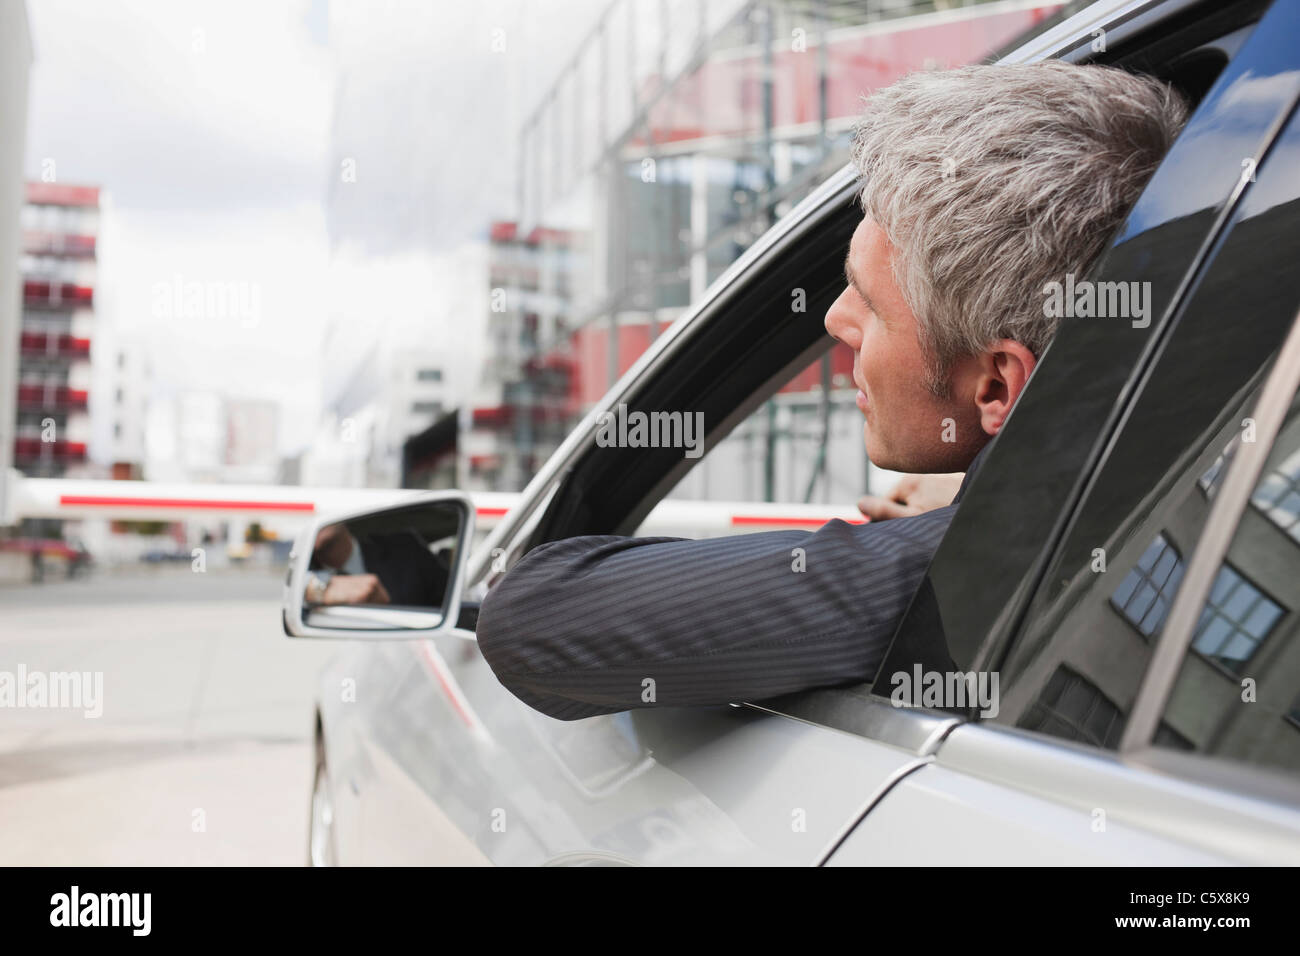 Germany, Hamburg, Businessman sitting in car in front of closed barrier - Stock Image